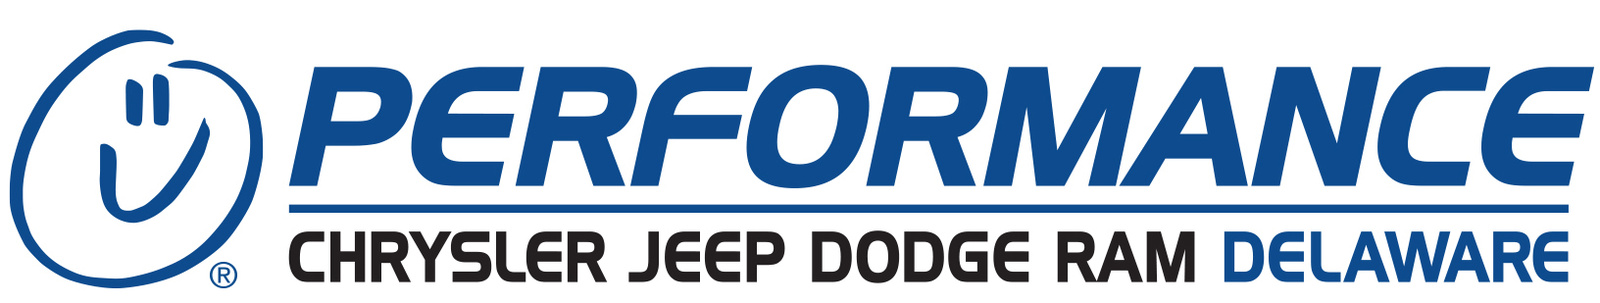 Ford Dealers In Delaware >> Performance Chrysler Jeep Dodge Ram Delaware - Delaware, OH: Read Consumer reviews, Browse Used ...